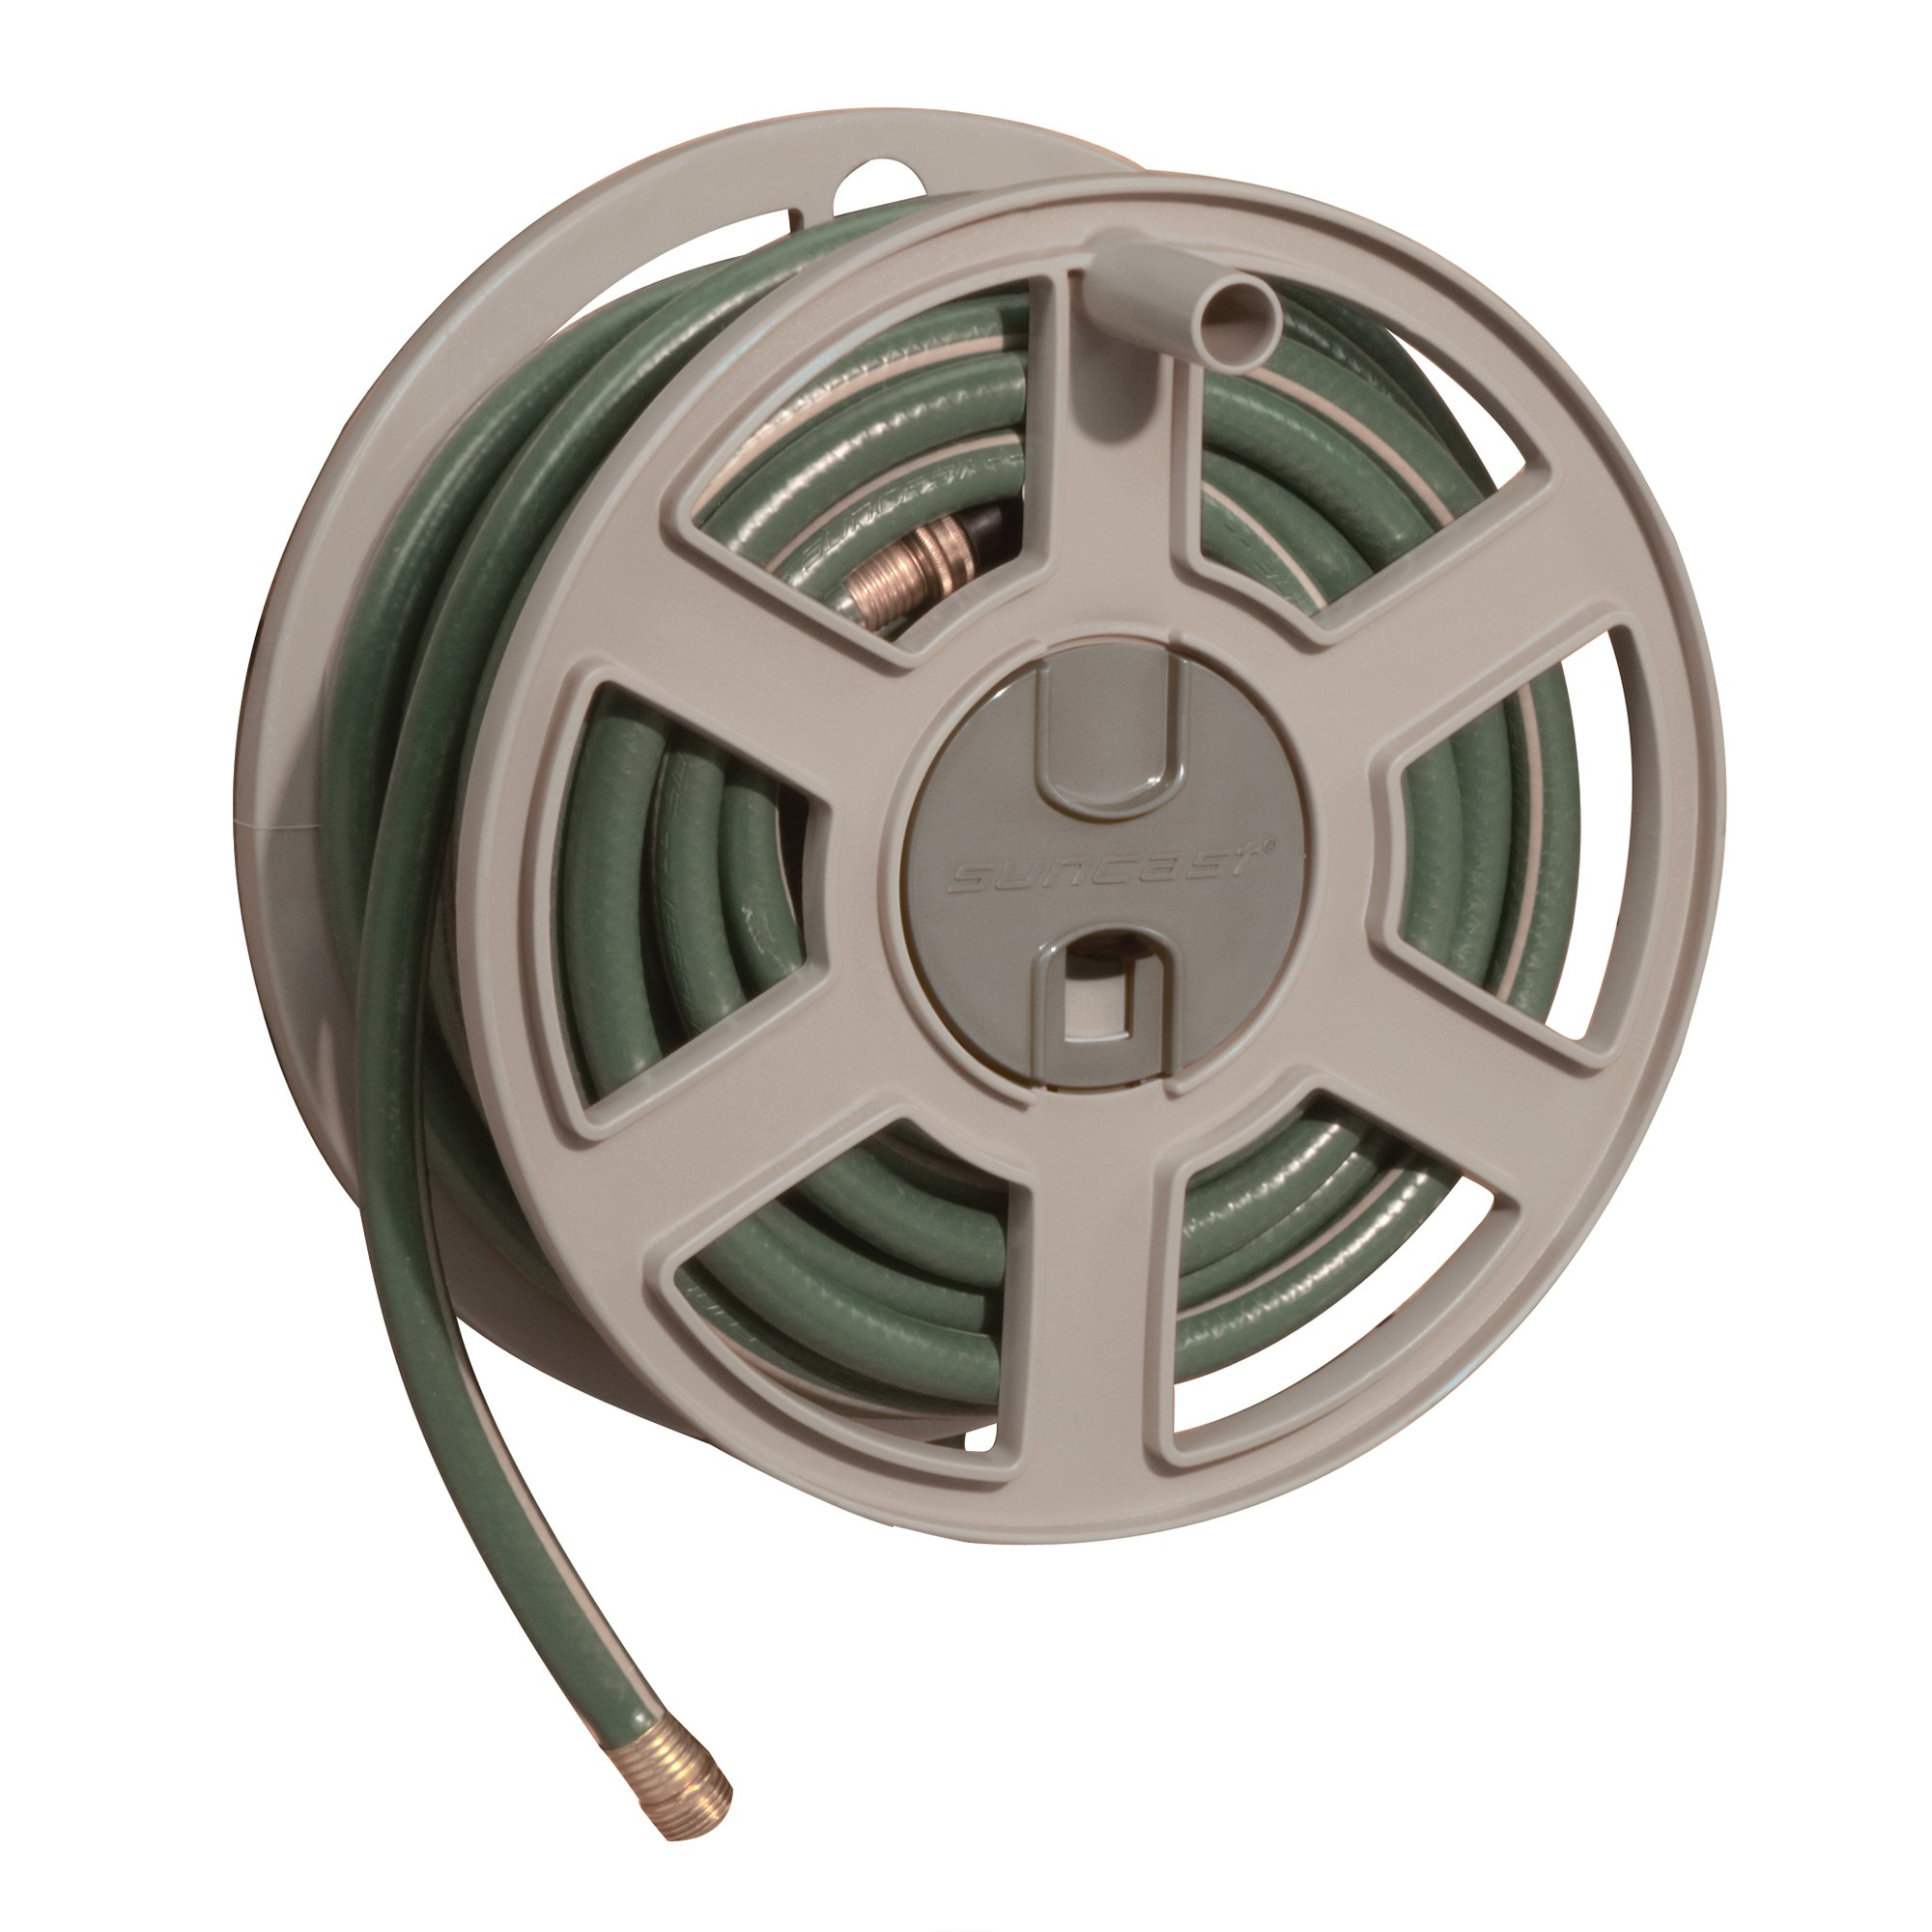 Suncast Sidetracker Garden Hose Reel - Fully Assembled Outdoor Wall Mount Tracker with Removable Reel - 100' Hose Capacity - Taupe by Suncast